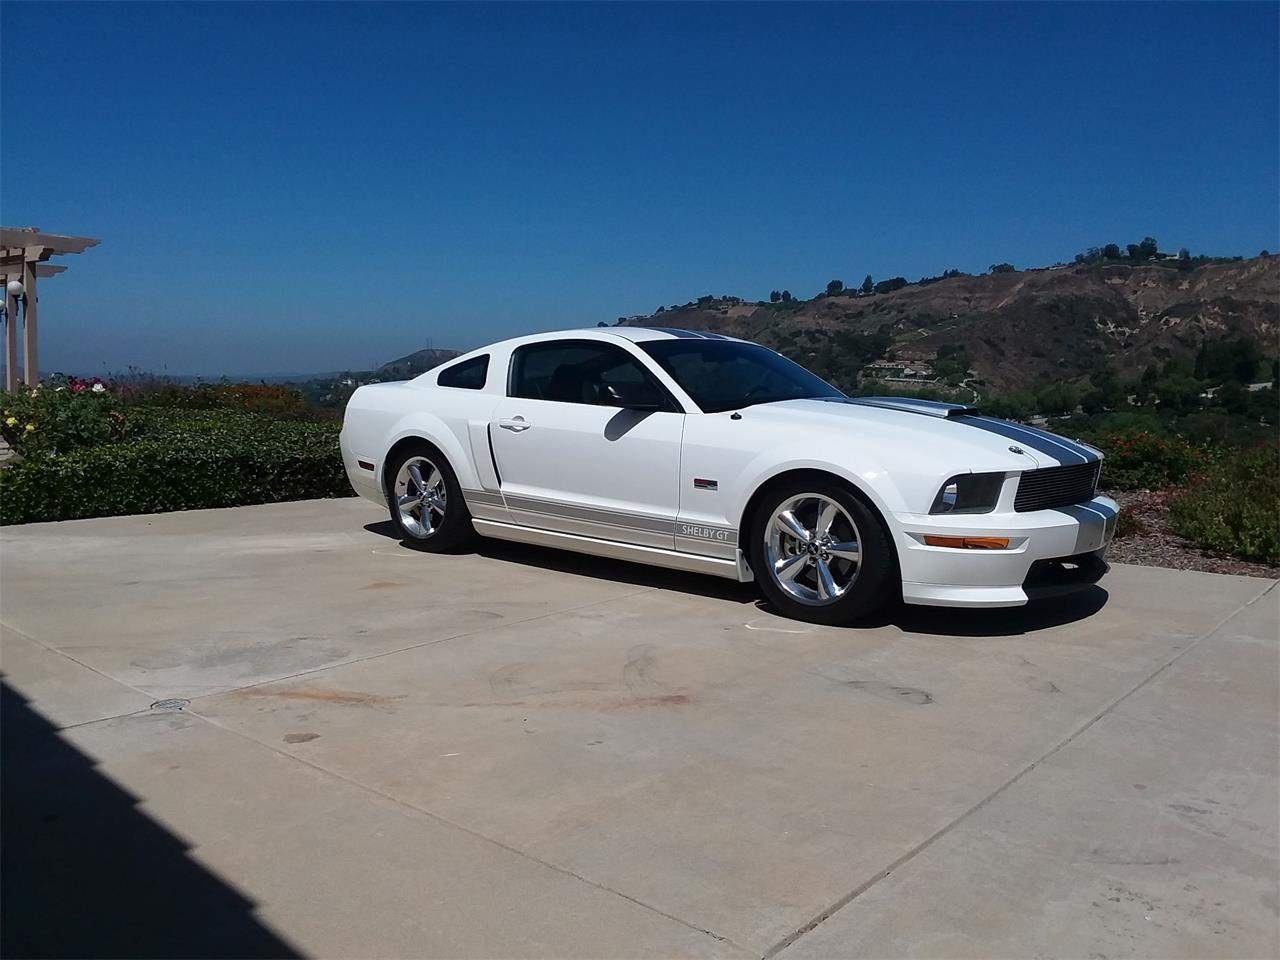 2007 Shelby GT for sale in Santa Rosa Valley, CA – photo 8